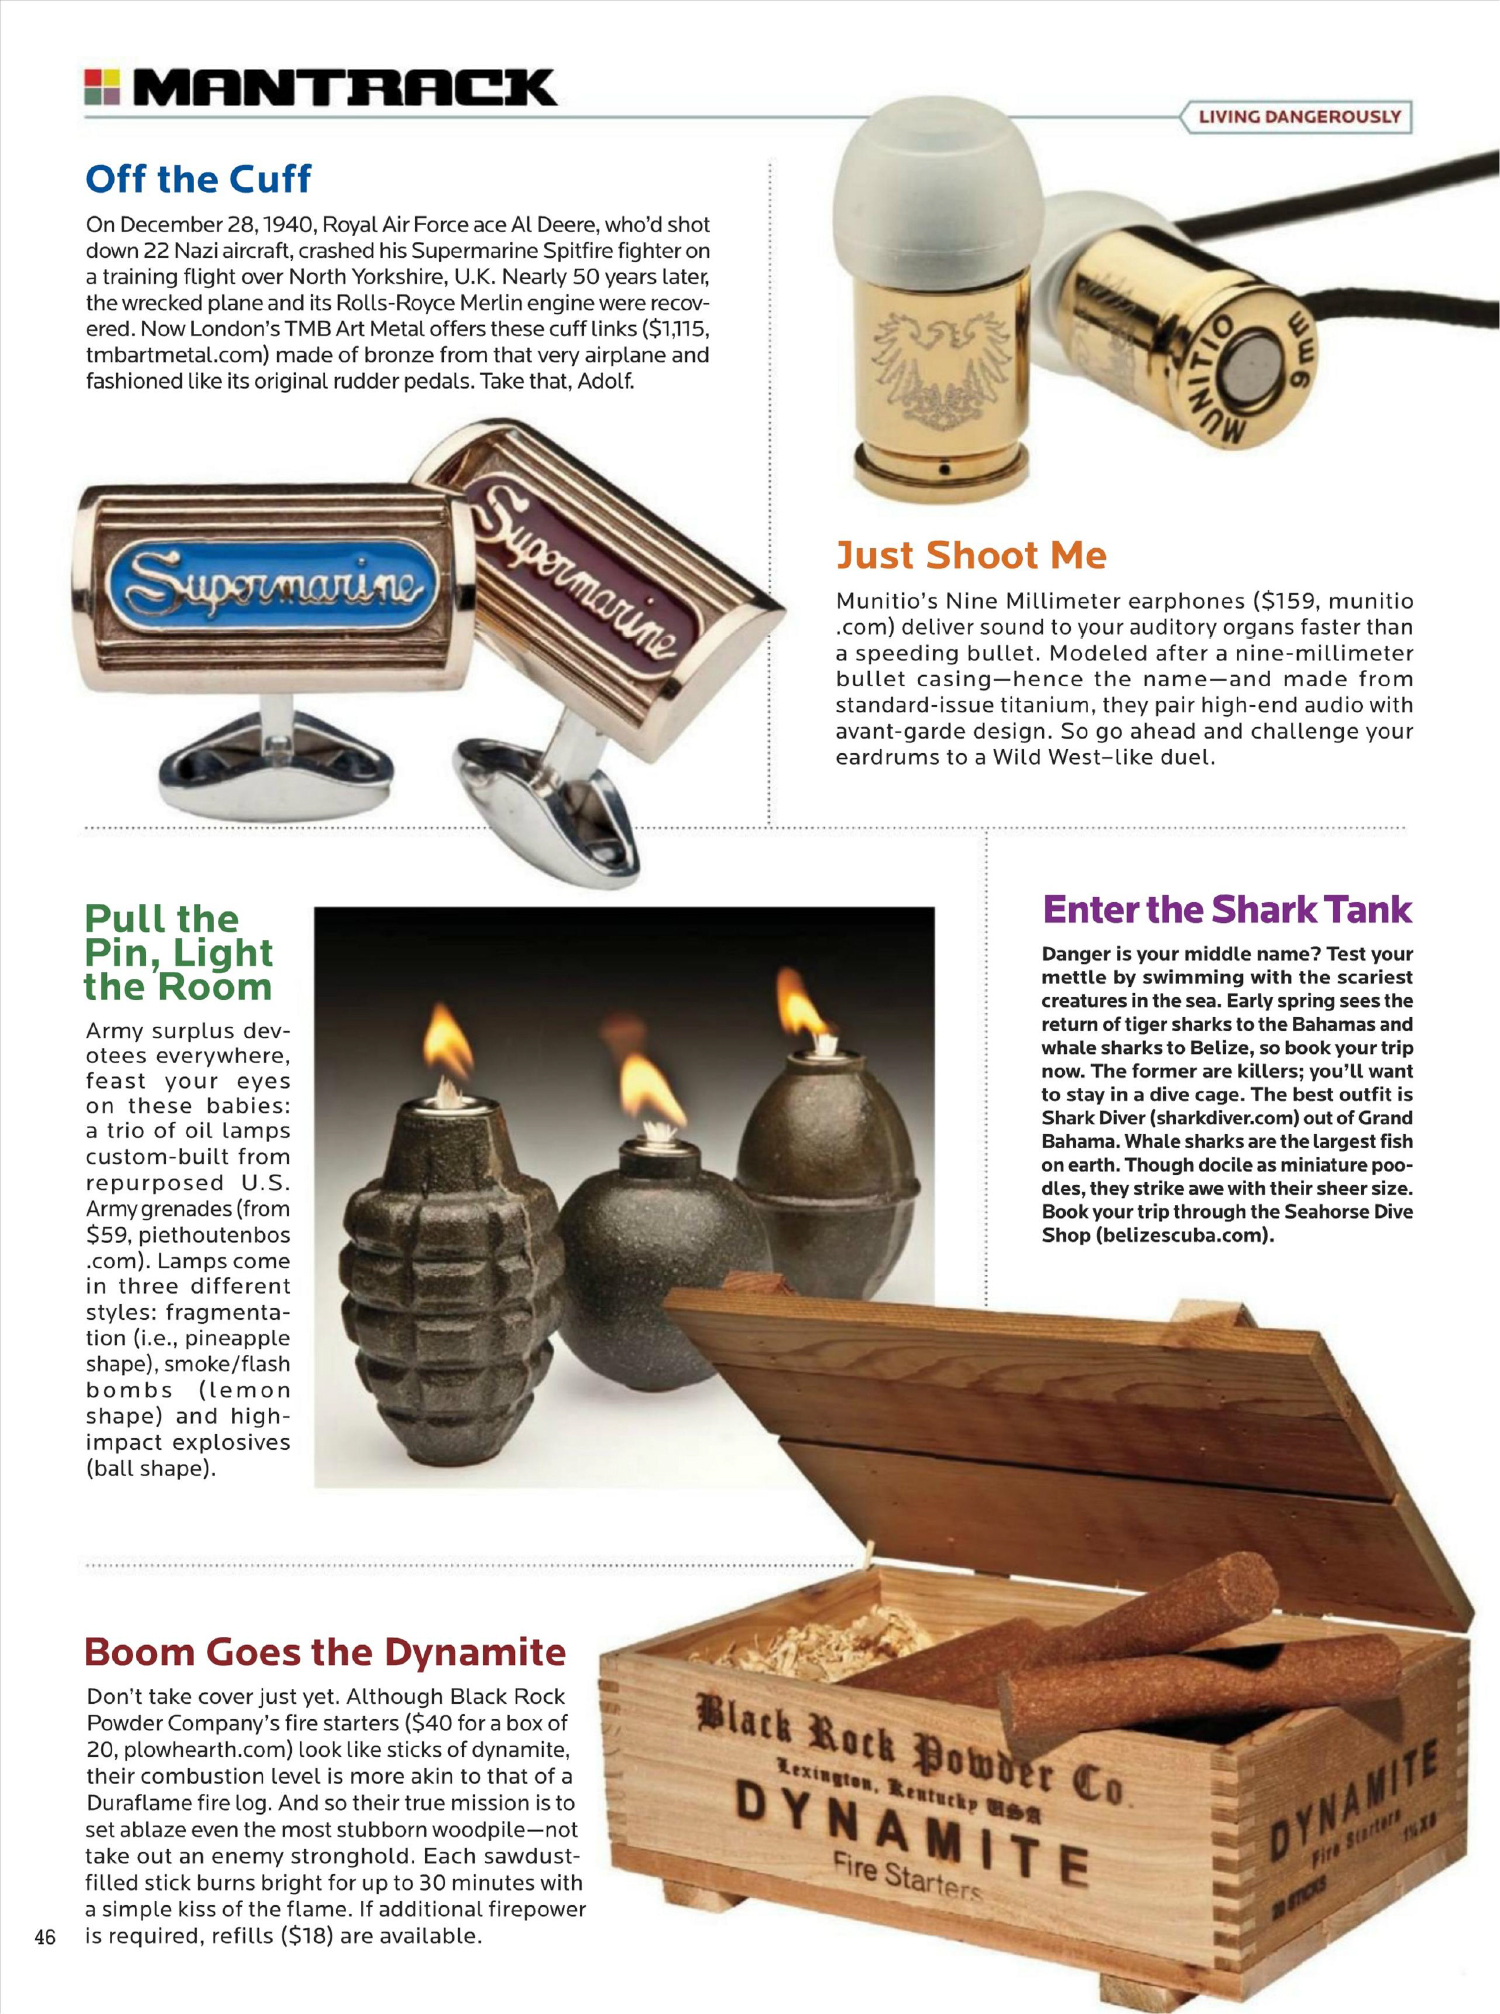 Pull the pin, light the room. A natural set of Hand Grenade Oil Lamps featured in Playboy's Mantrack section on a series of products for 'Living Dangerously'.